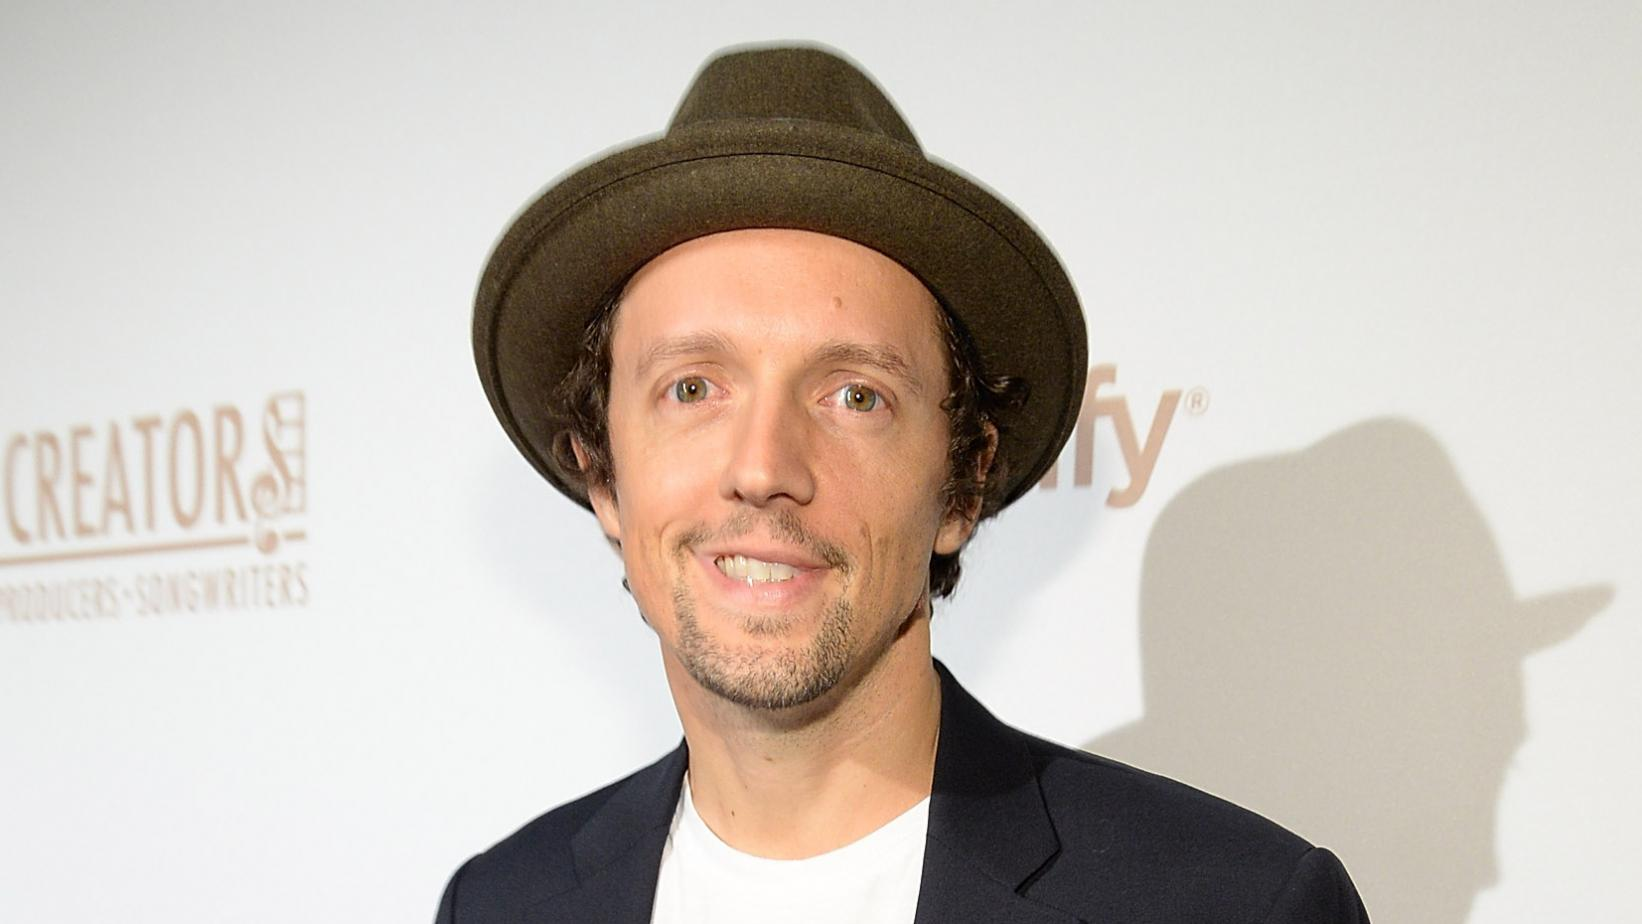 Jason Mraz photographed in 2016